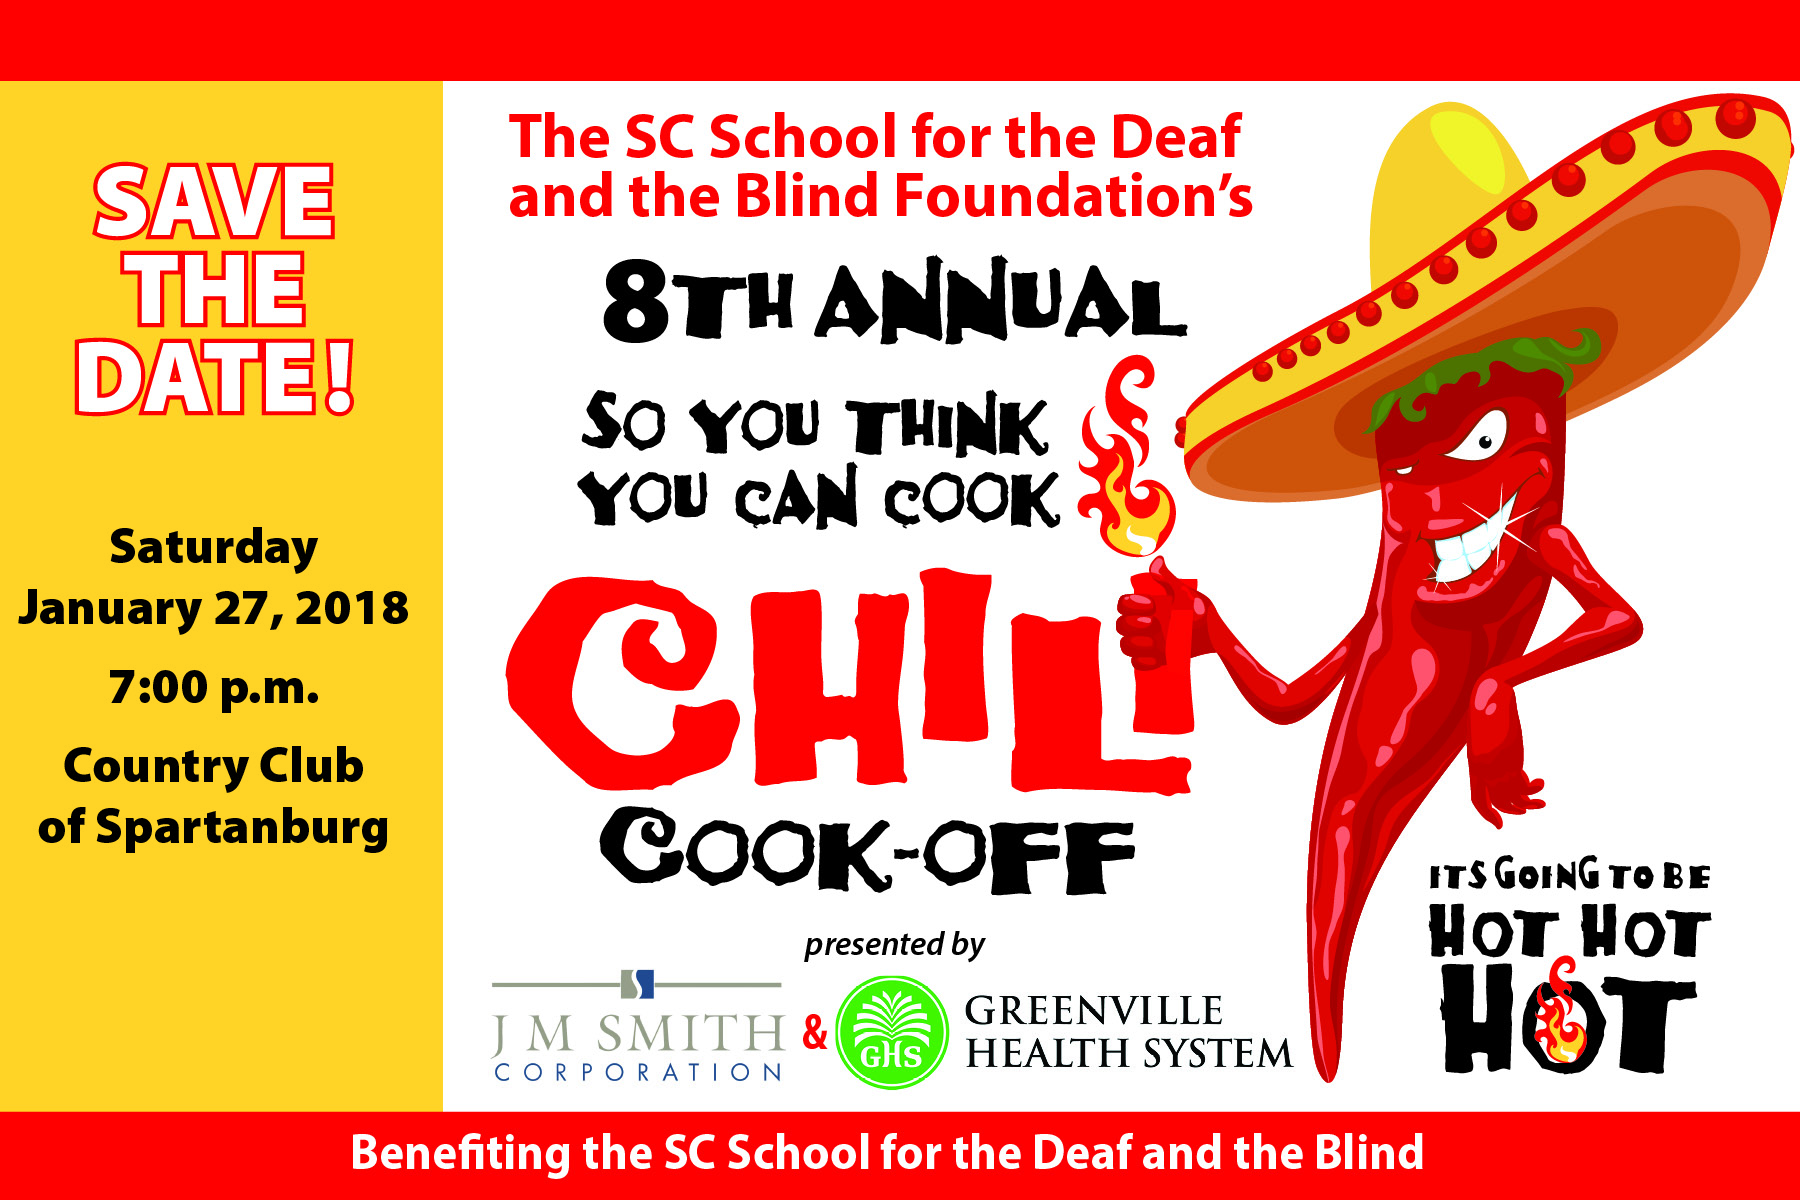 Save The Date – 8th Annual Chili Cook-Off